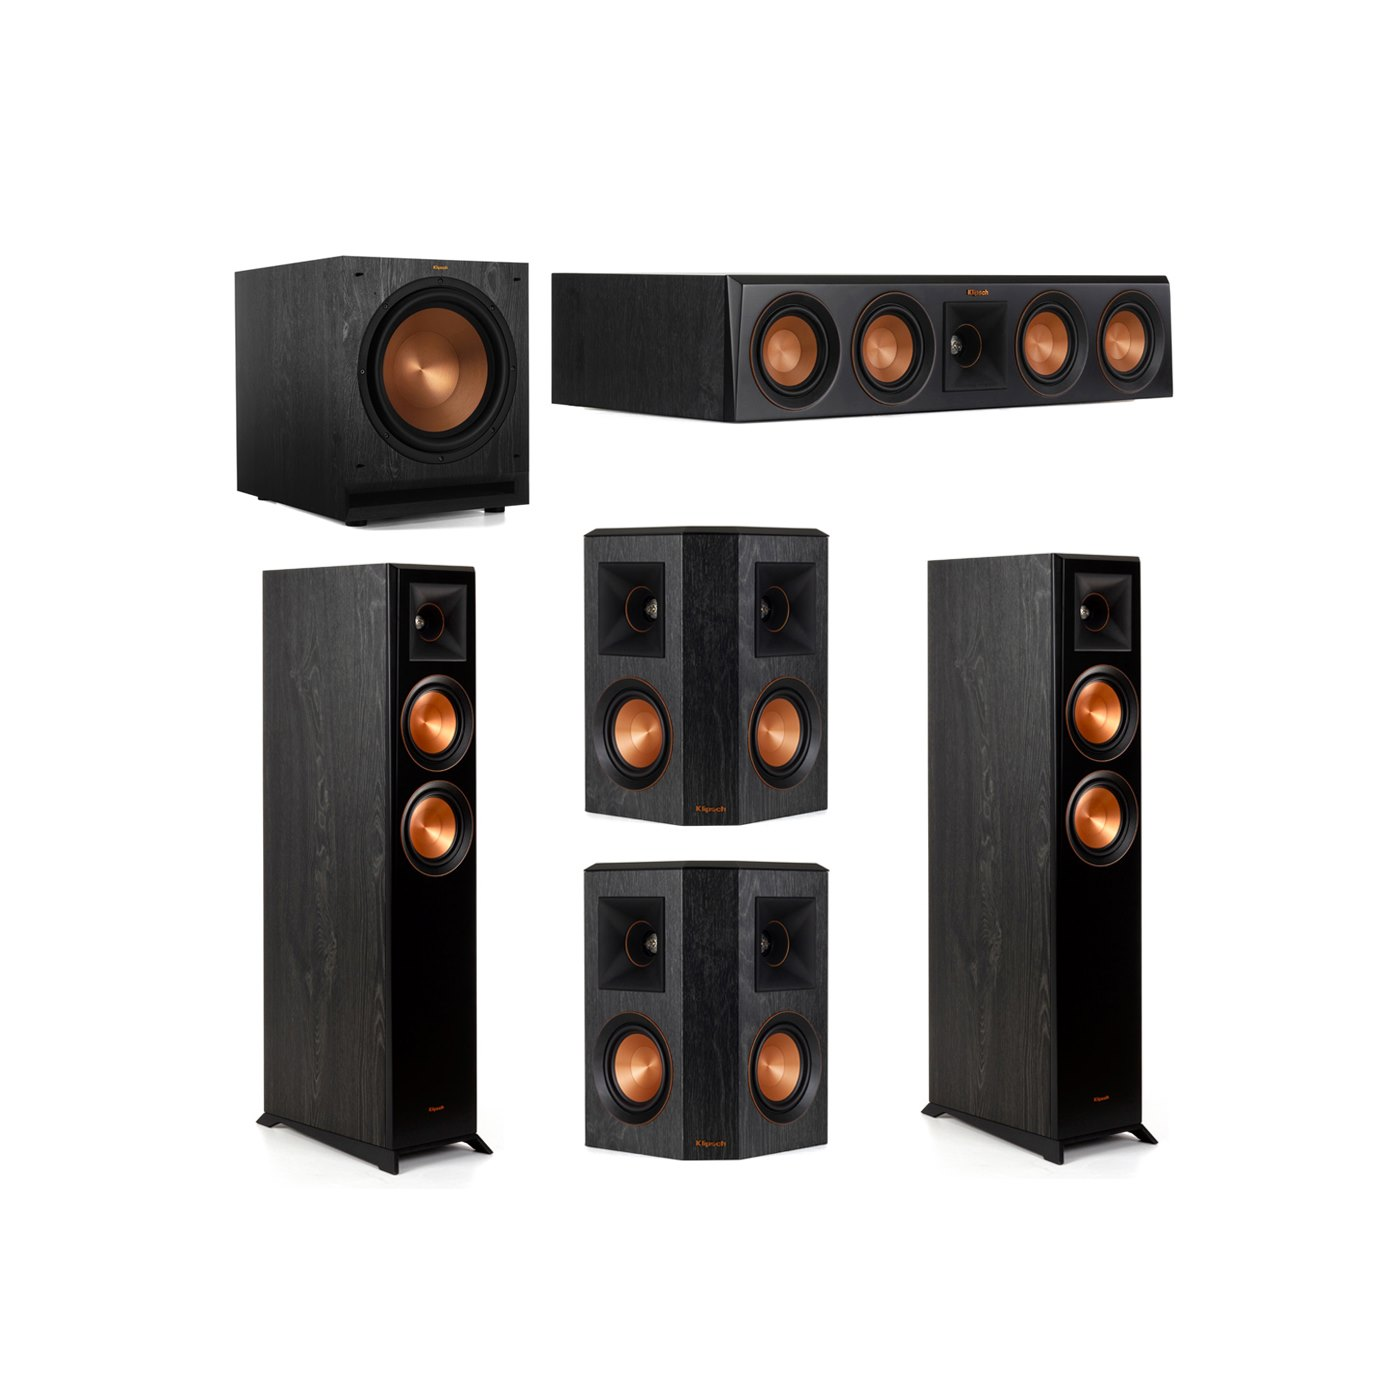 Klipsch 5.1 System with 2 RP-5000F Floorstanding Speakers, 1 Klipsch RP-404C Center Speaker, 2 Klipsch RP-402S Surround Speakers, 1 Klipsch SPL-120 Subwoofer